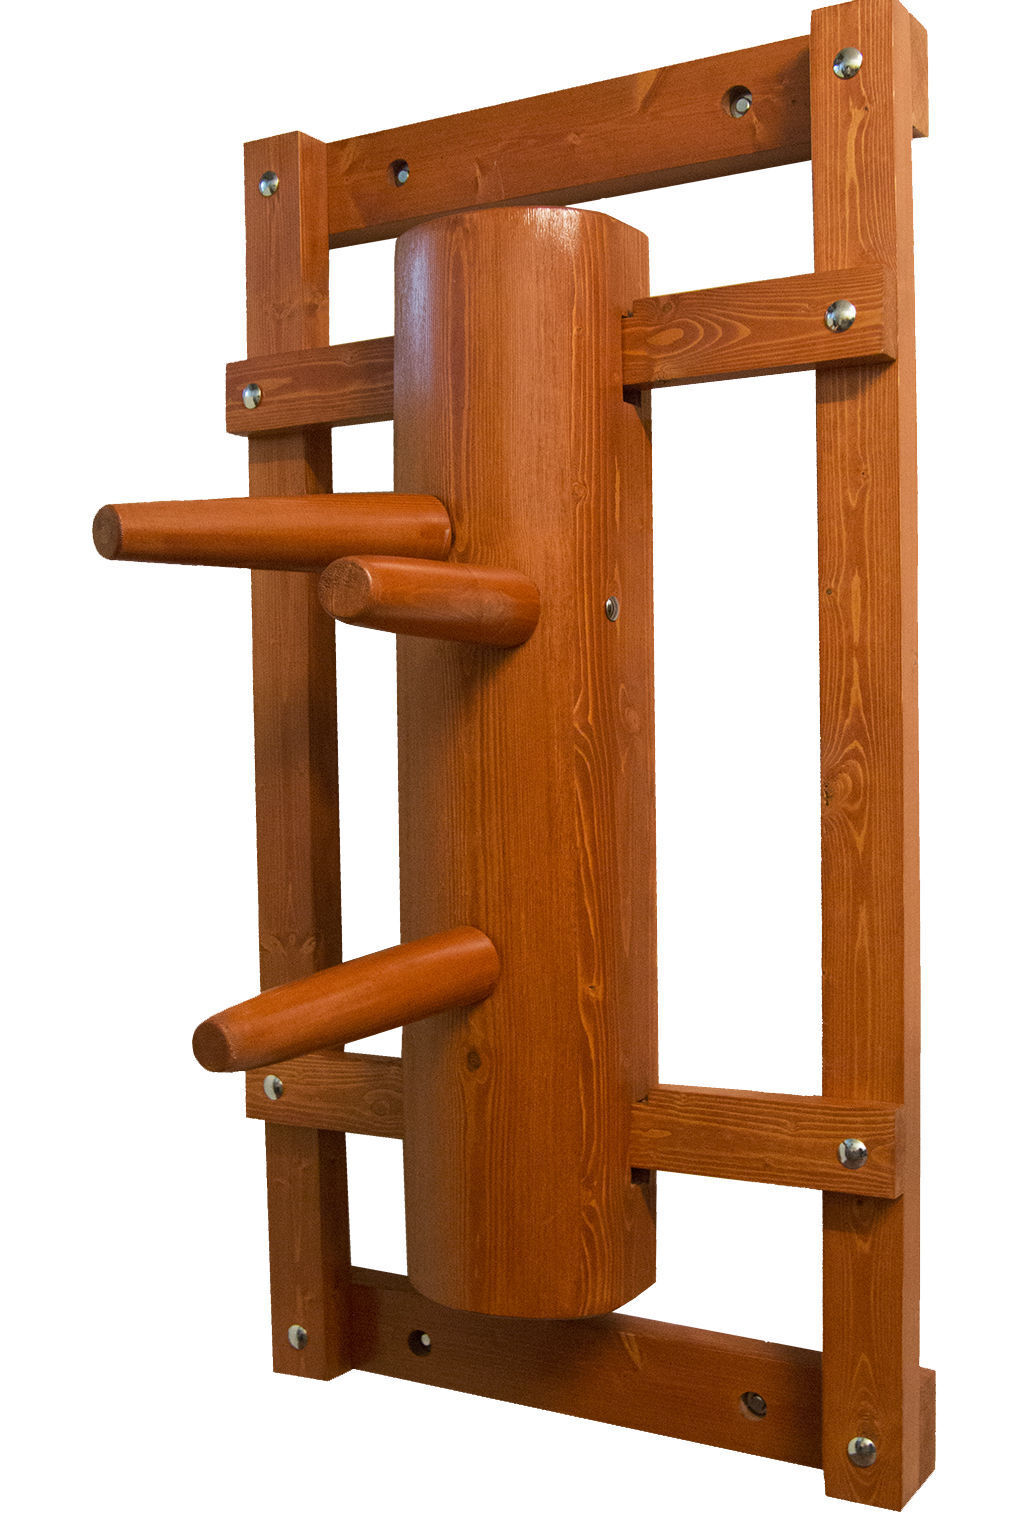 Wing Chun Wooden Dummy with bow